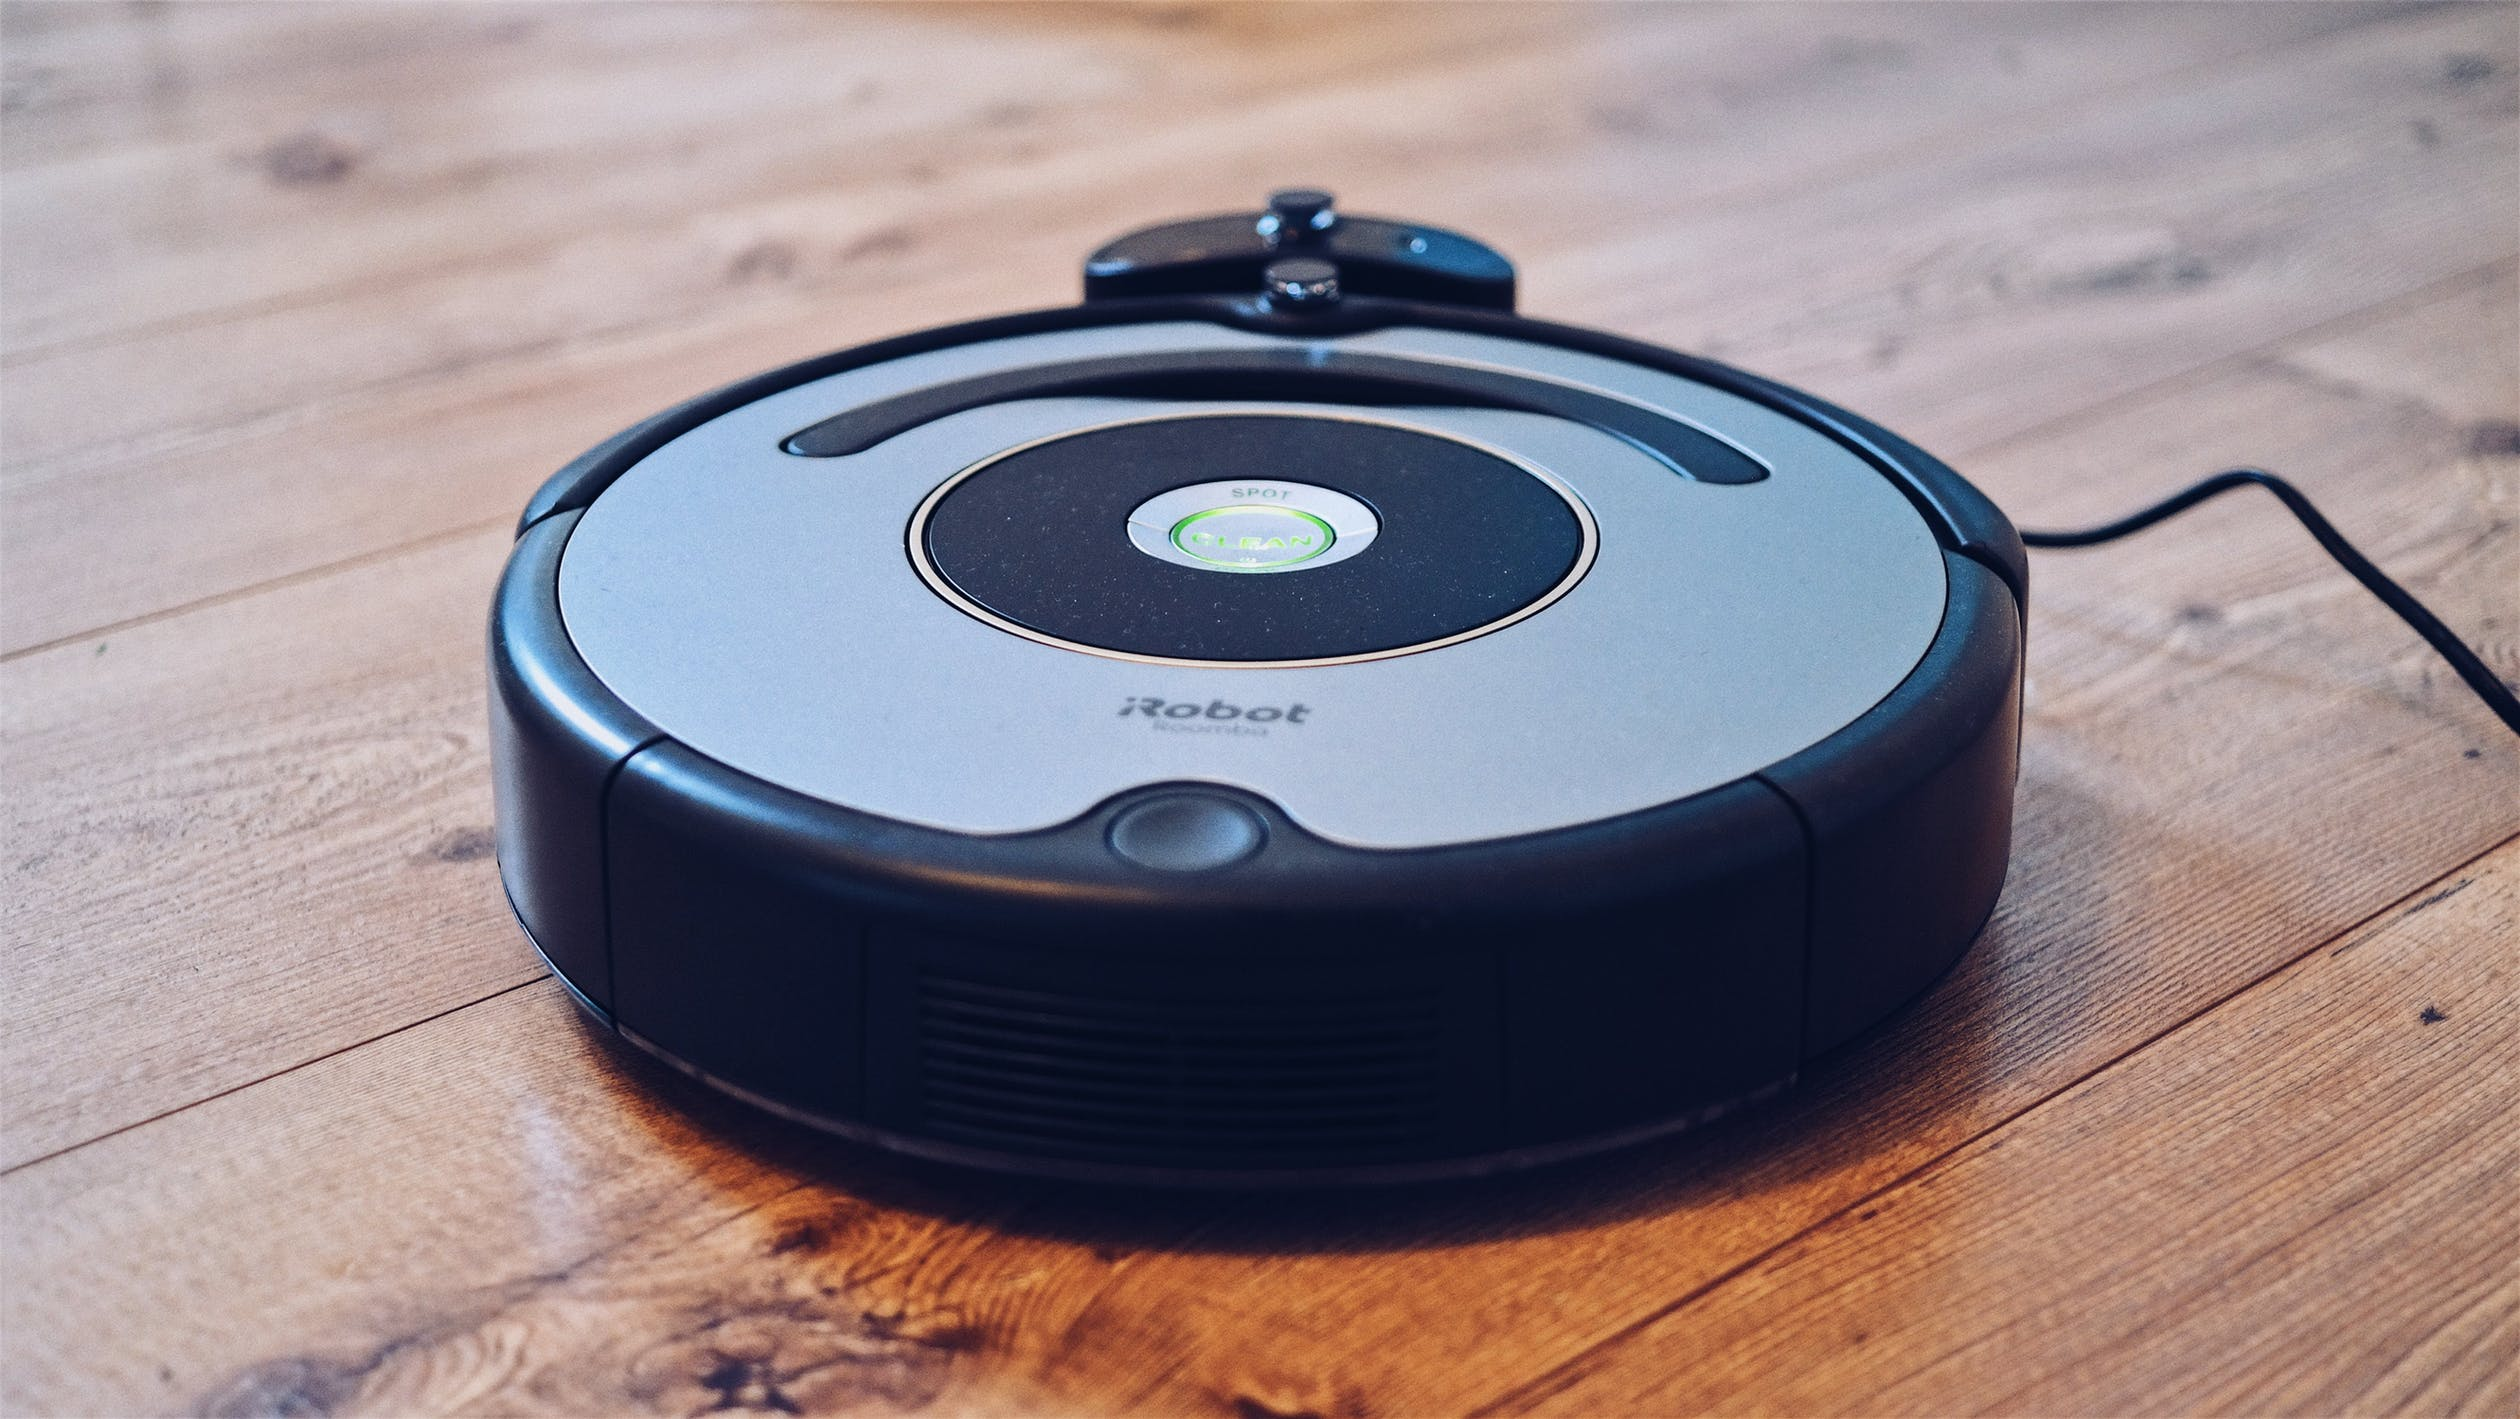 Eufy Robovac 30 vs. Roomba 690: which one is the best?